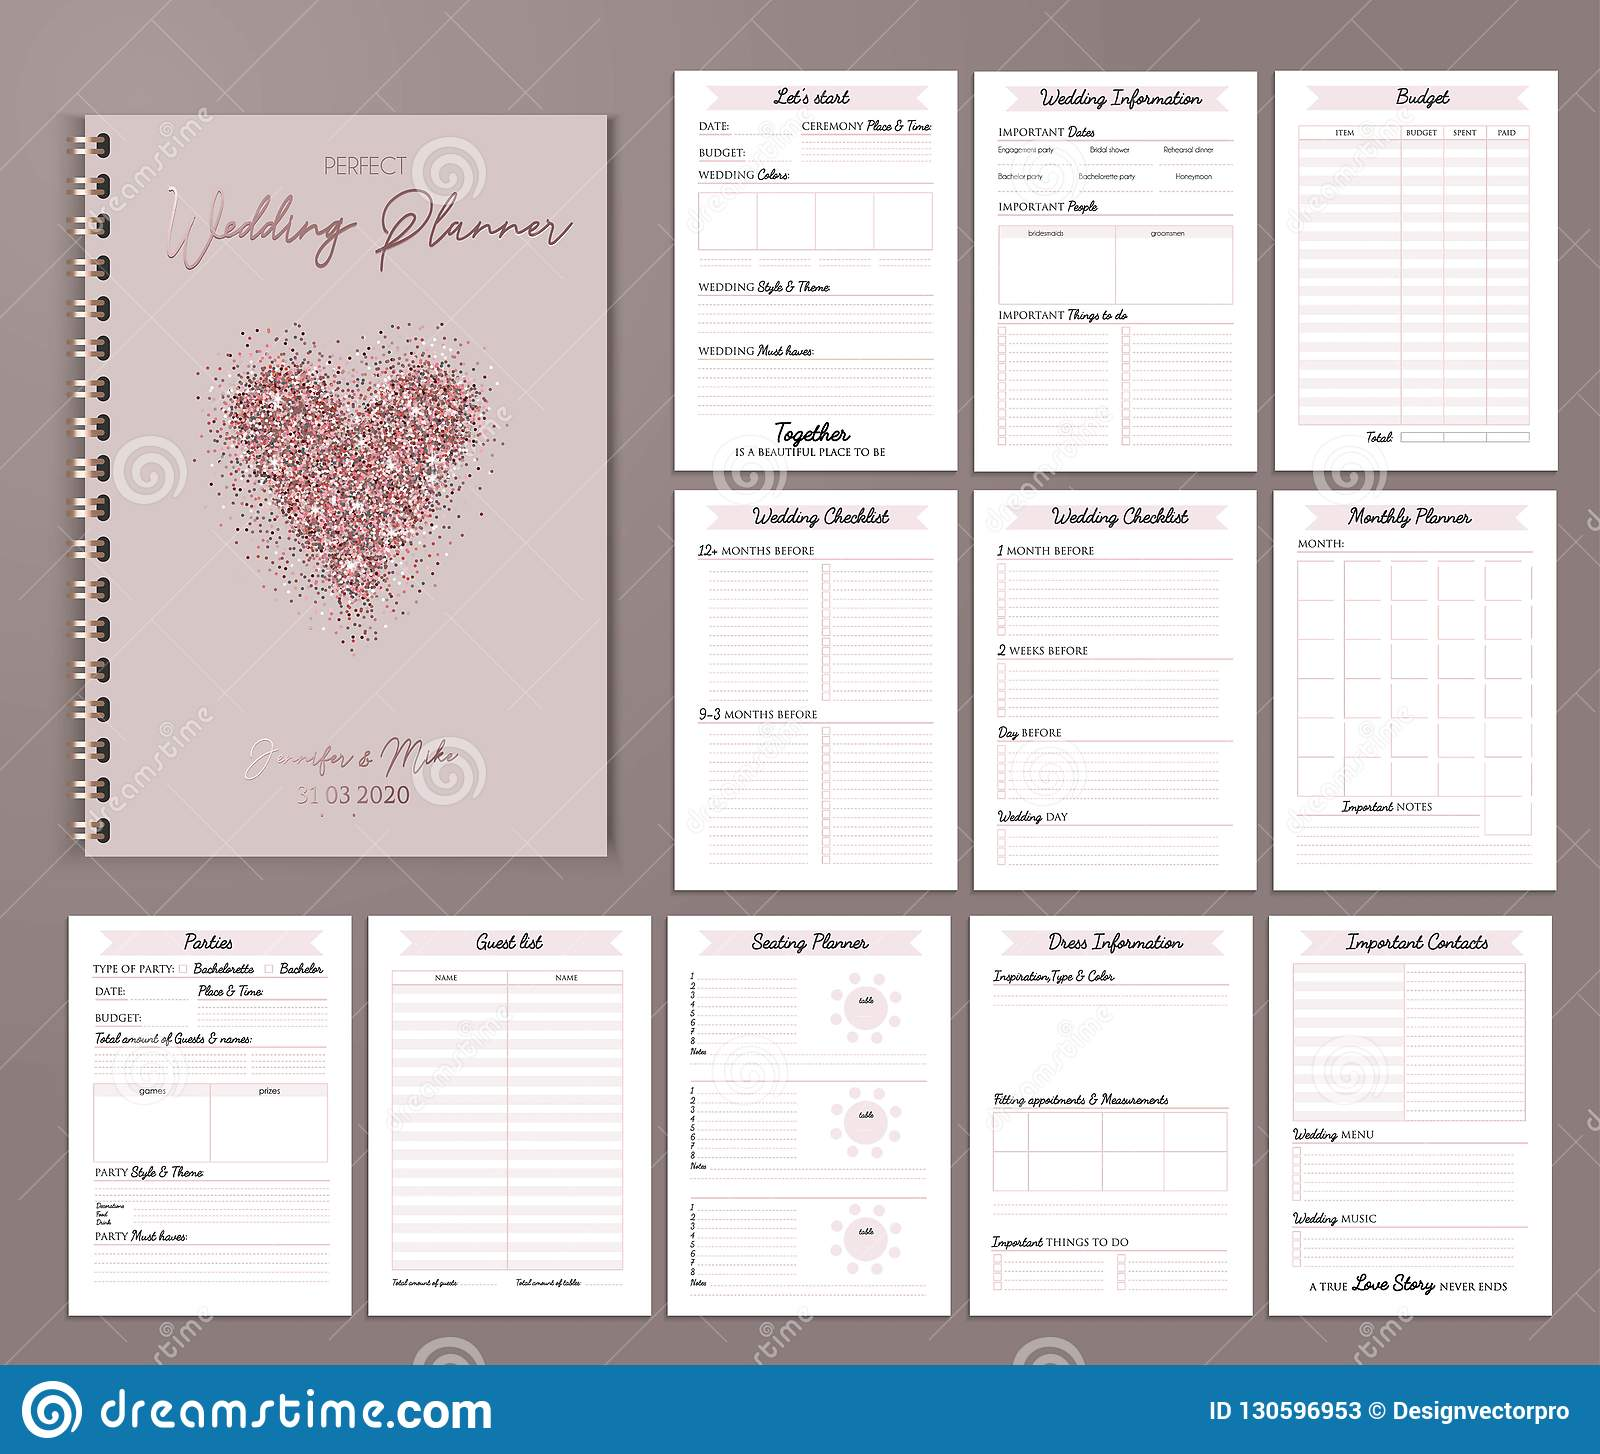 photo about Printable Wedding Planner identified as Marriage Planner Printable Design and style With Checklists, Major